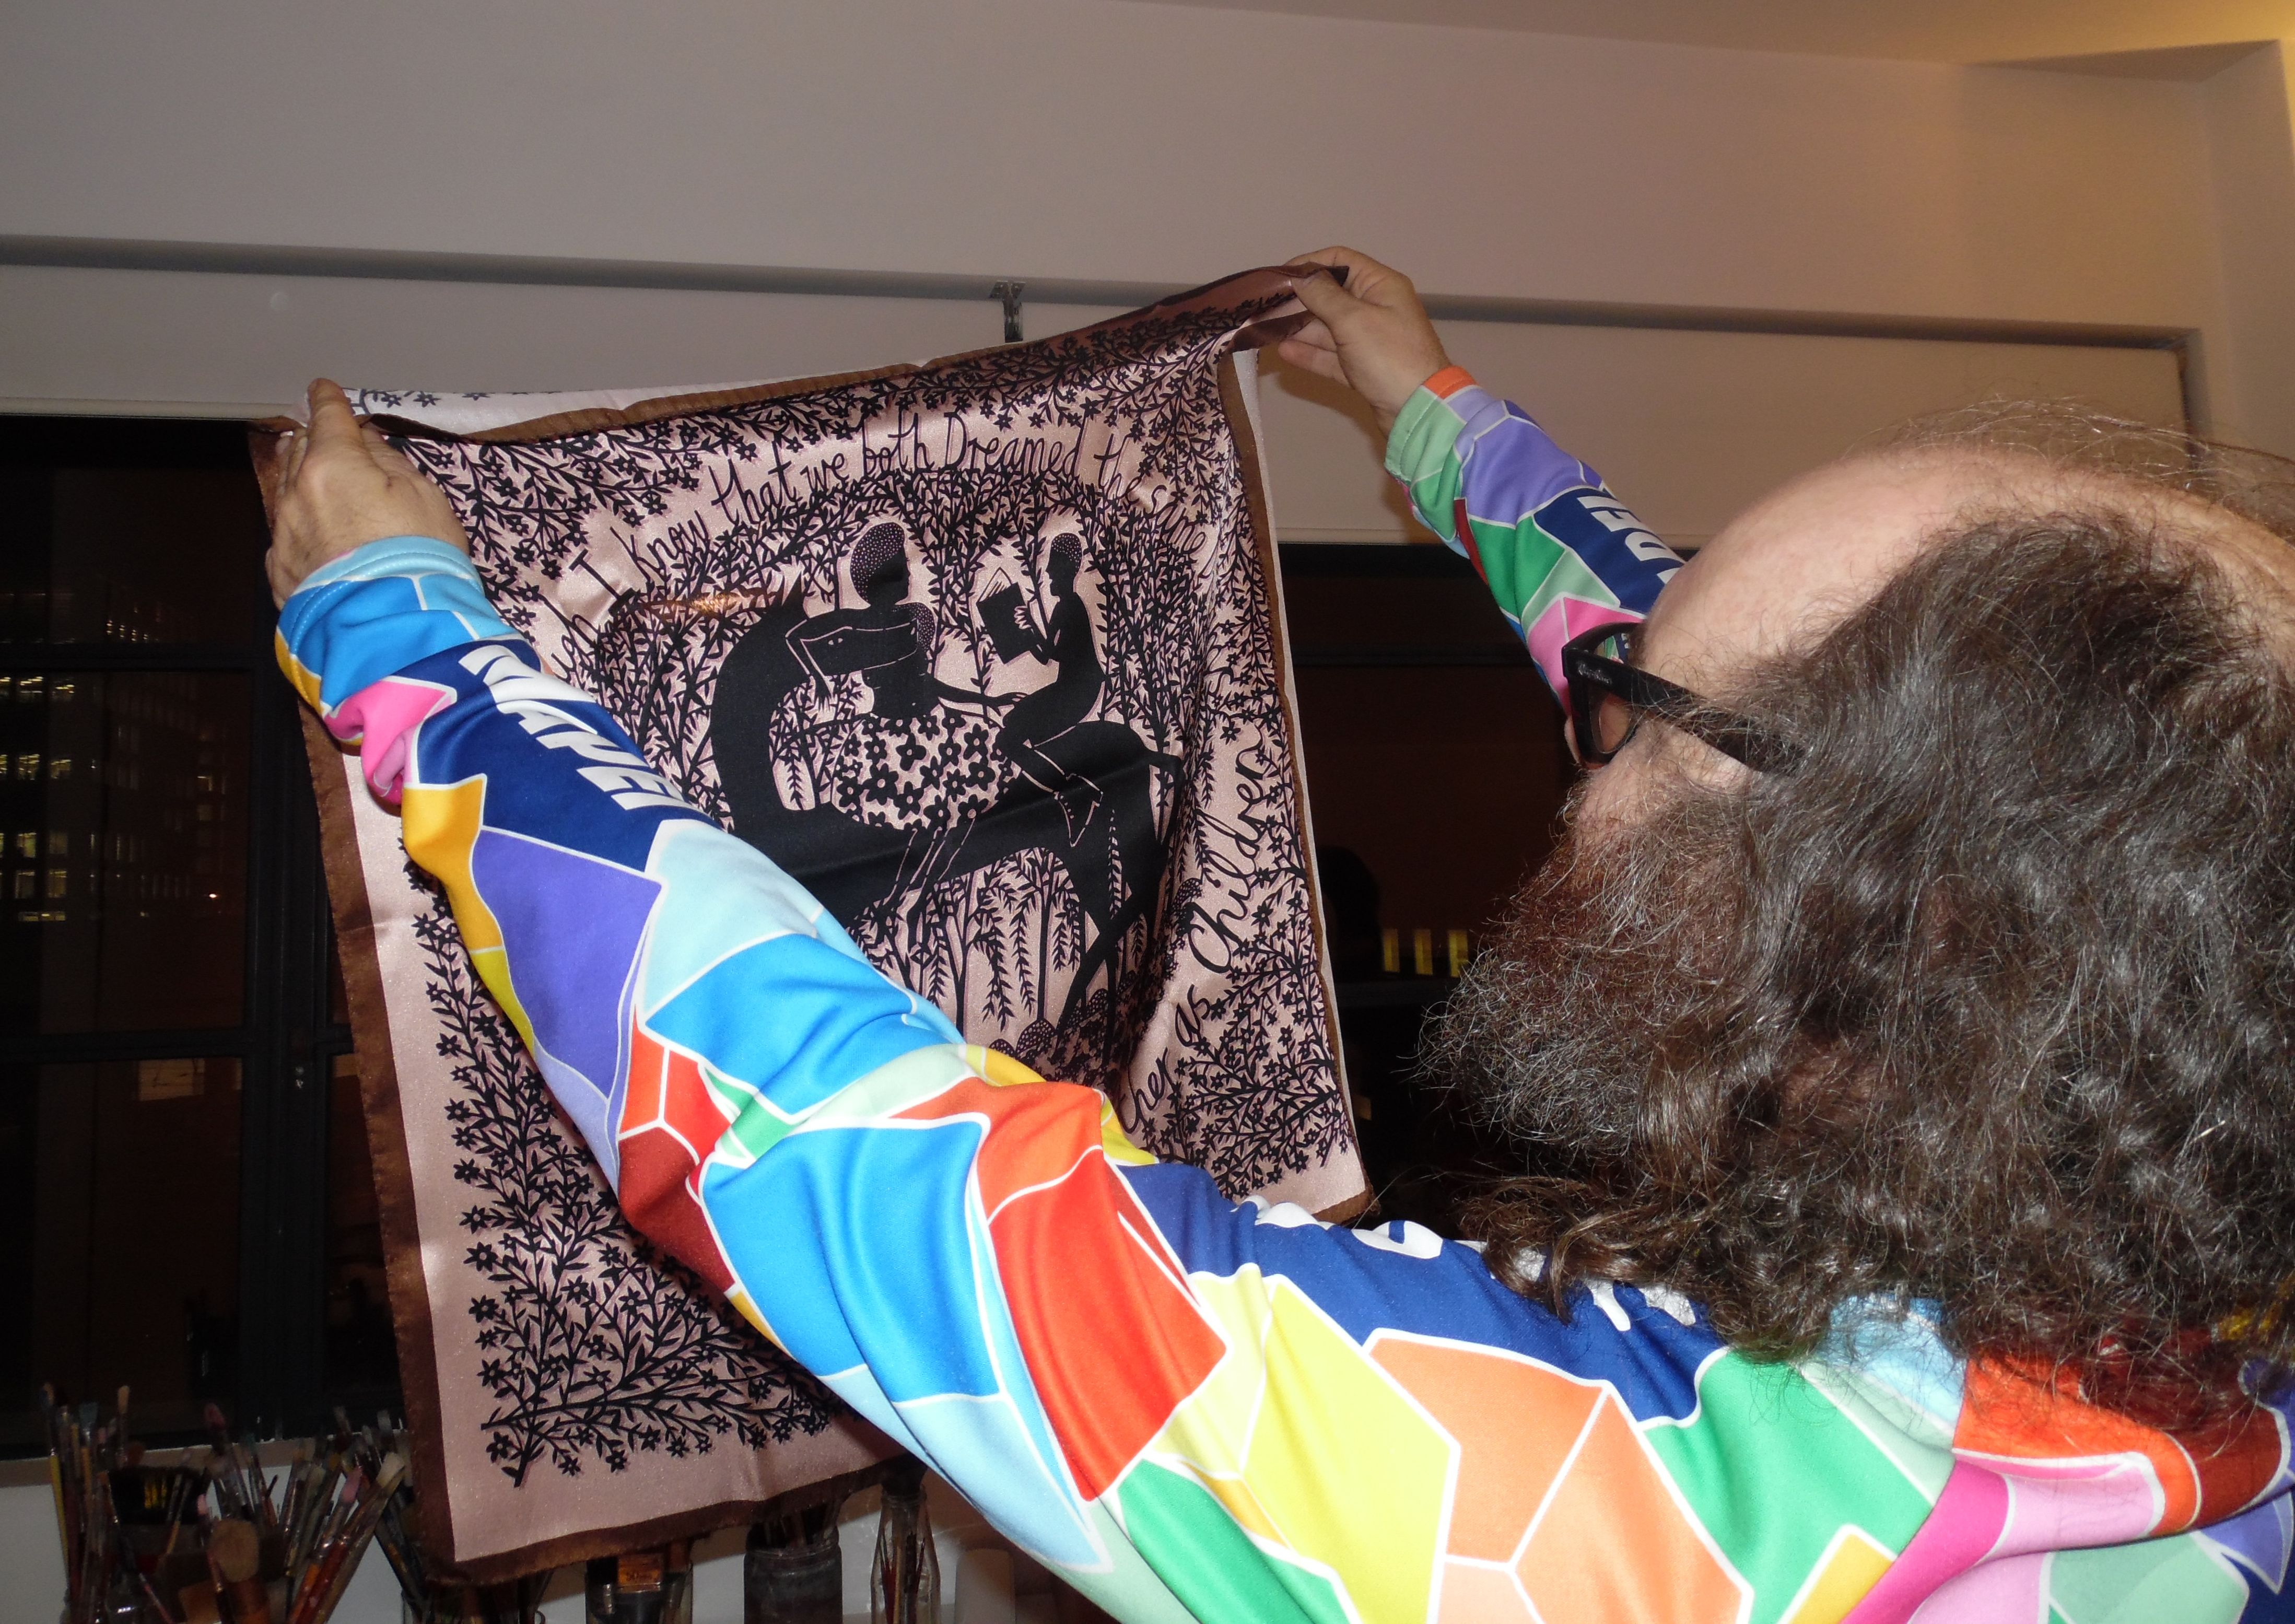 Rob Ryan admiring one of his thescarfgallery.com scarves.